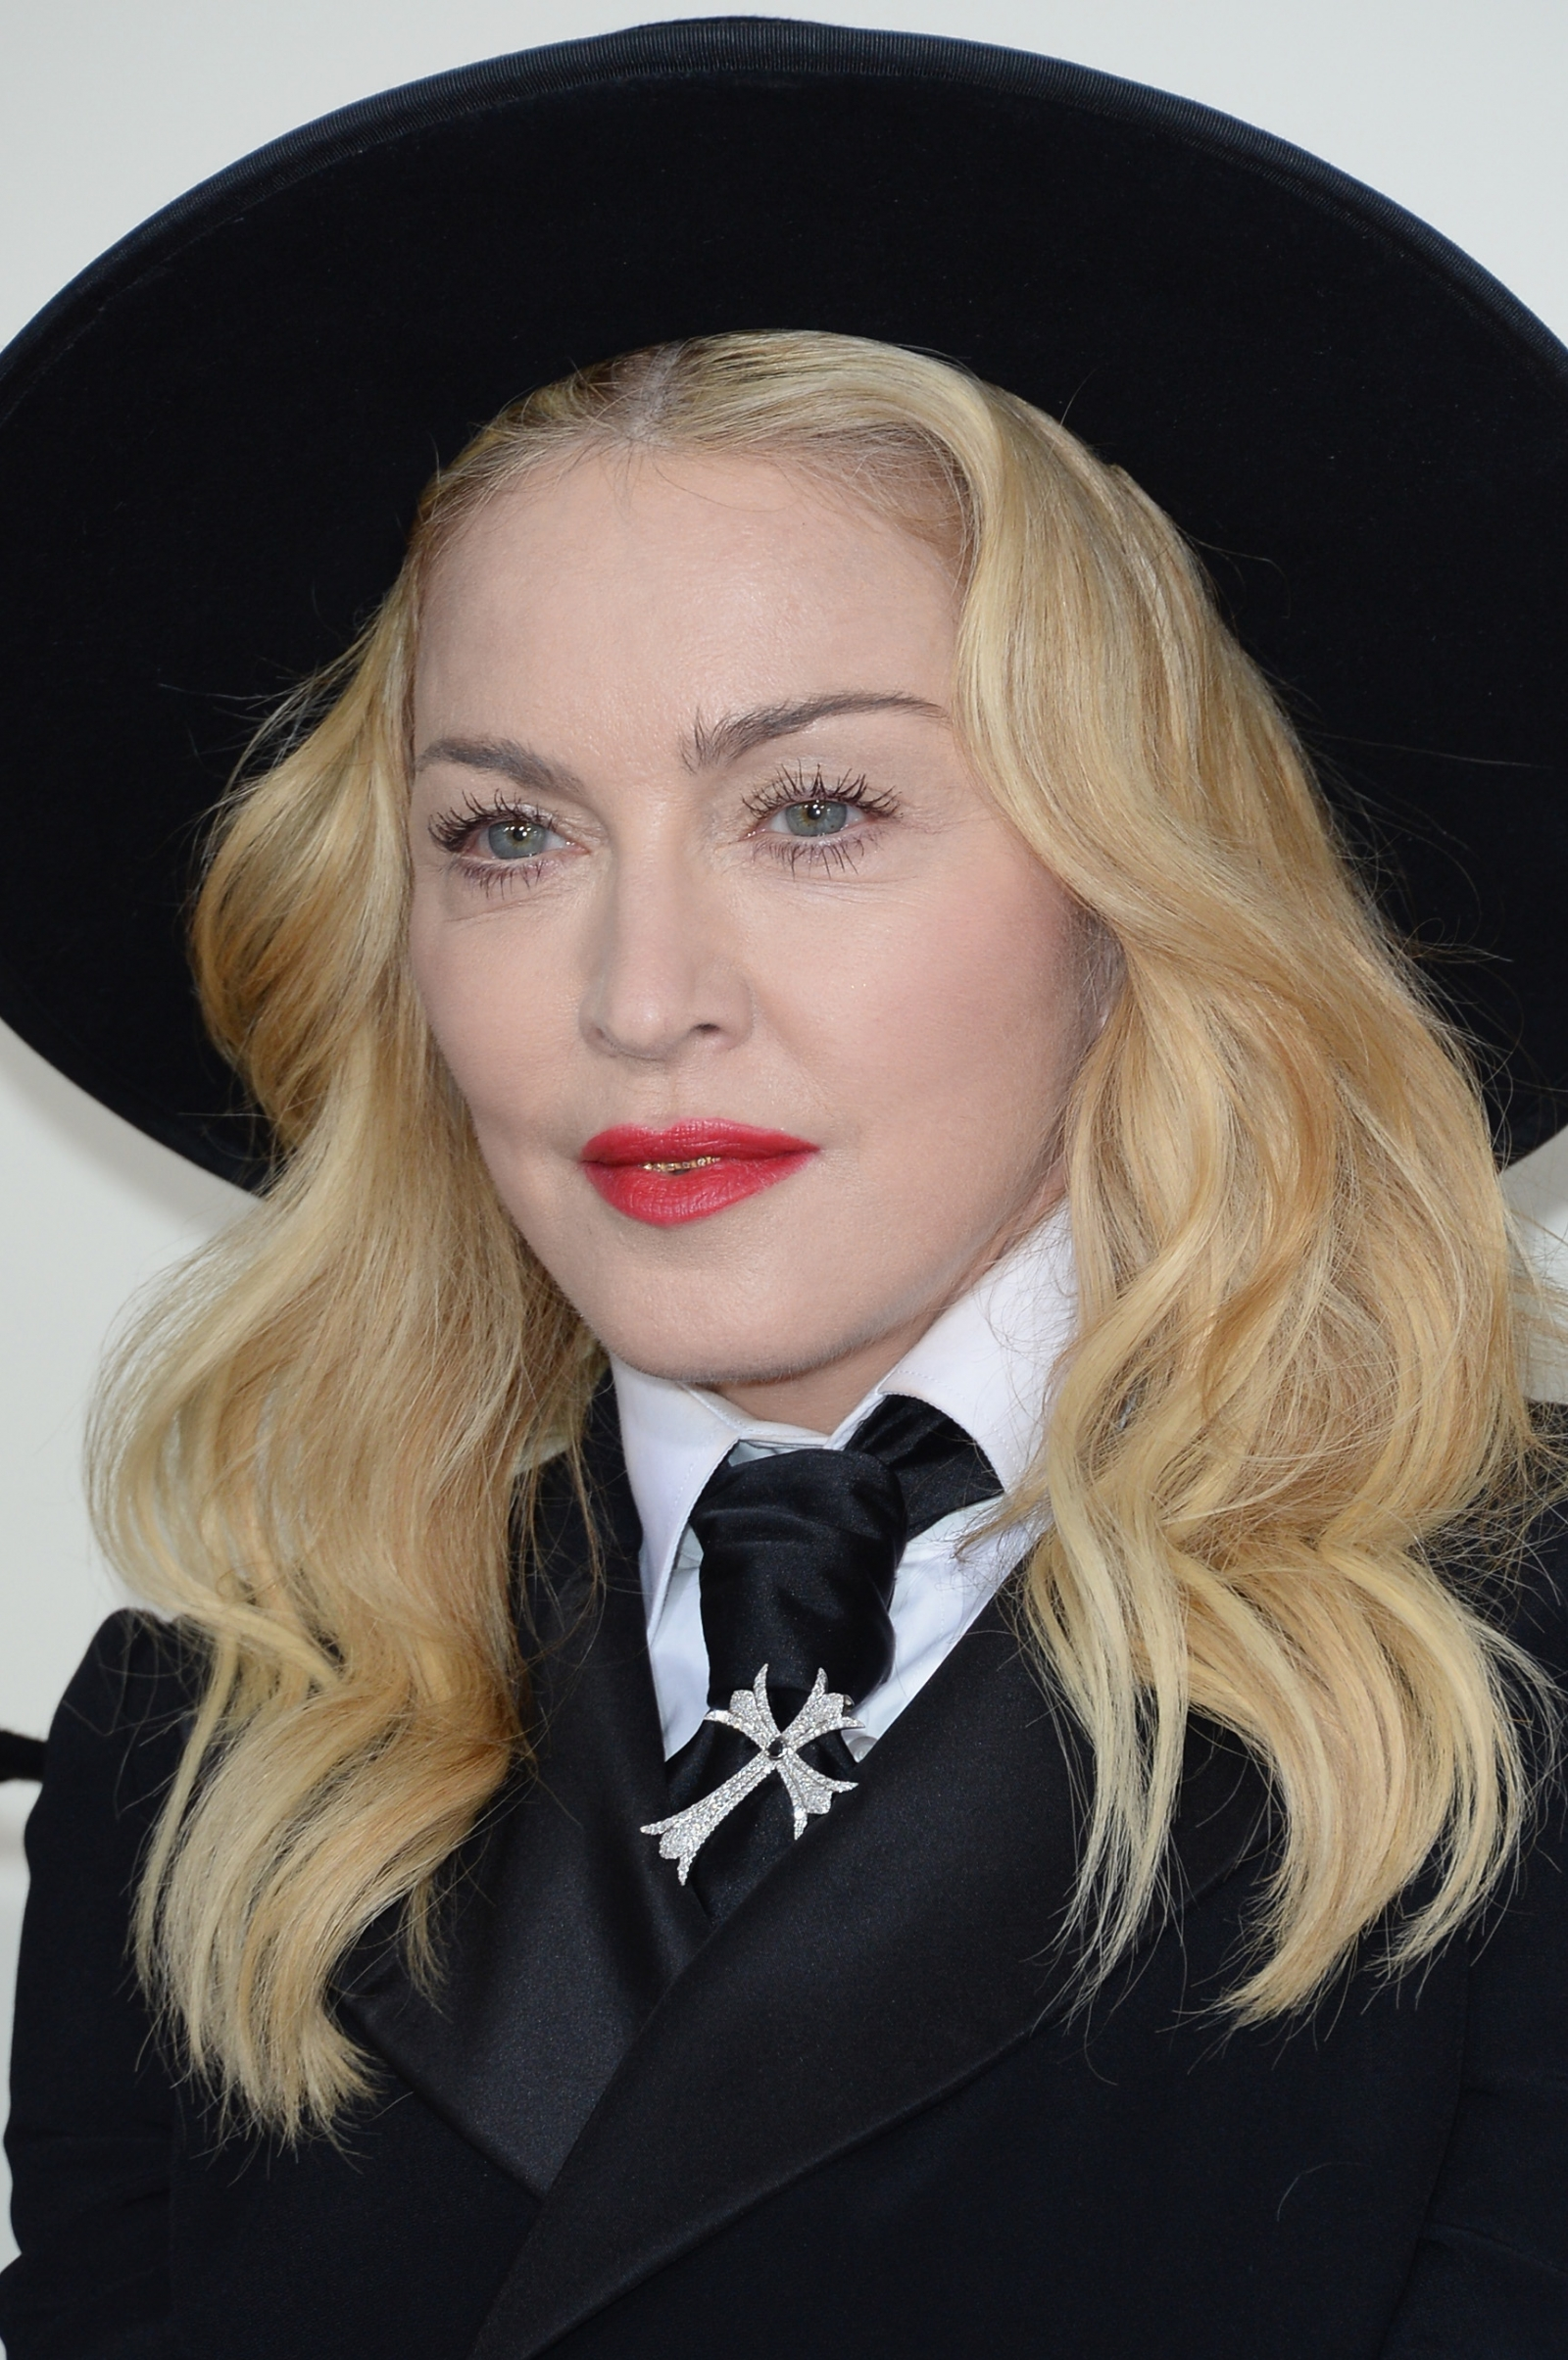 Madonna Grammys Performance Madonna to Perform at 2015